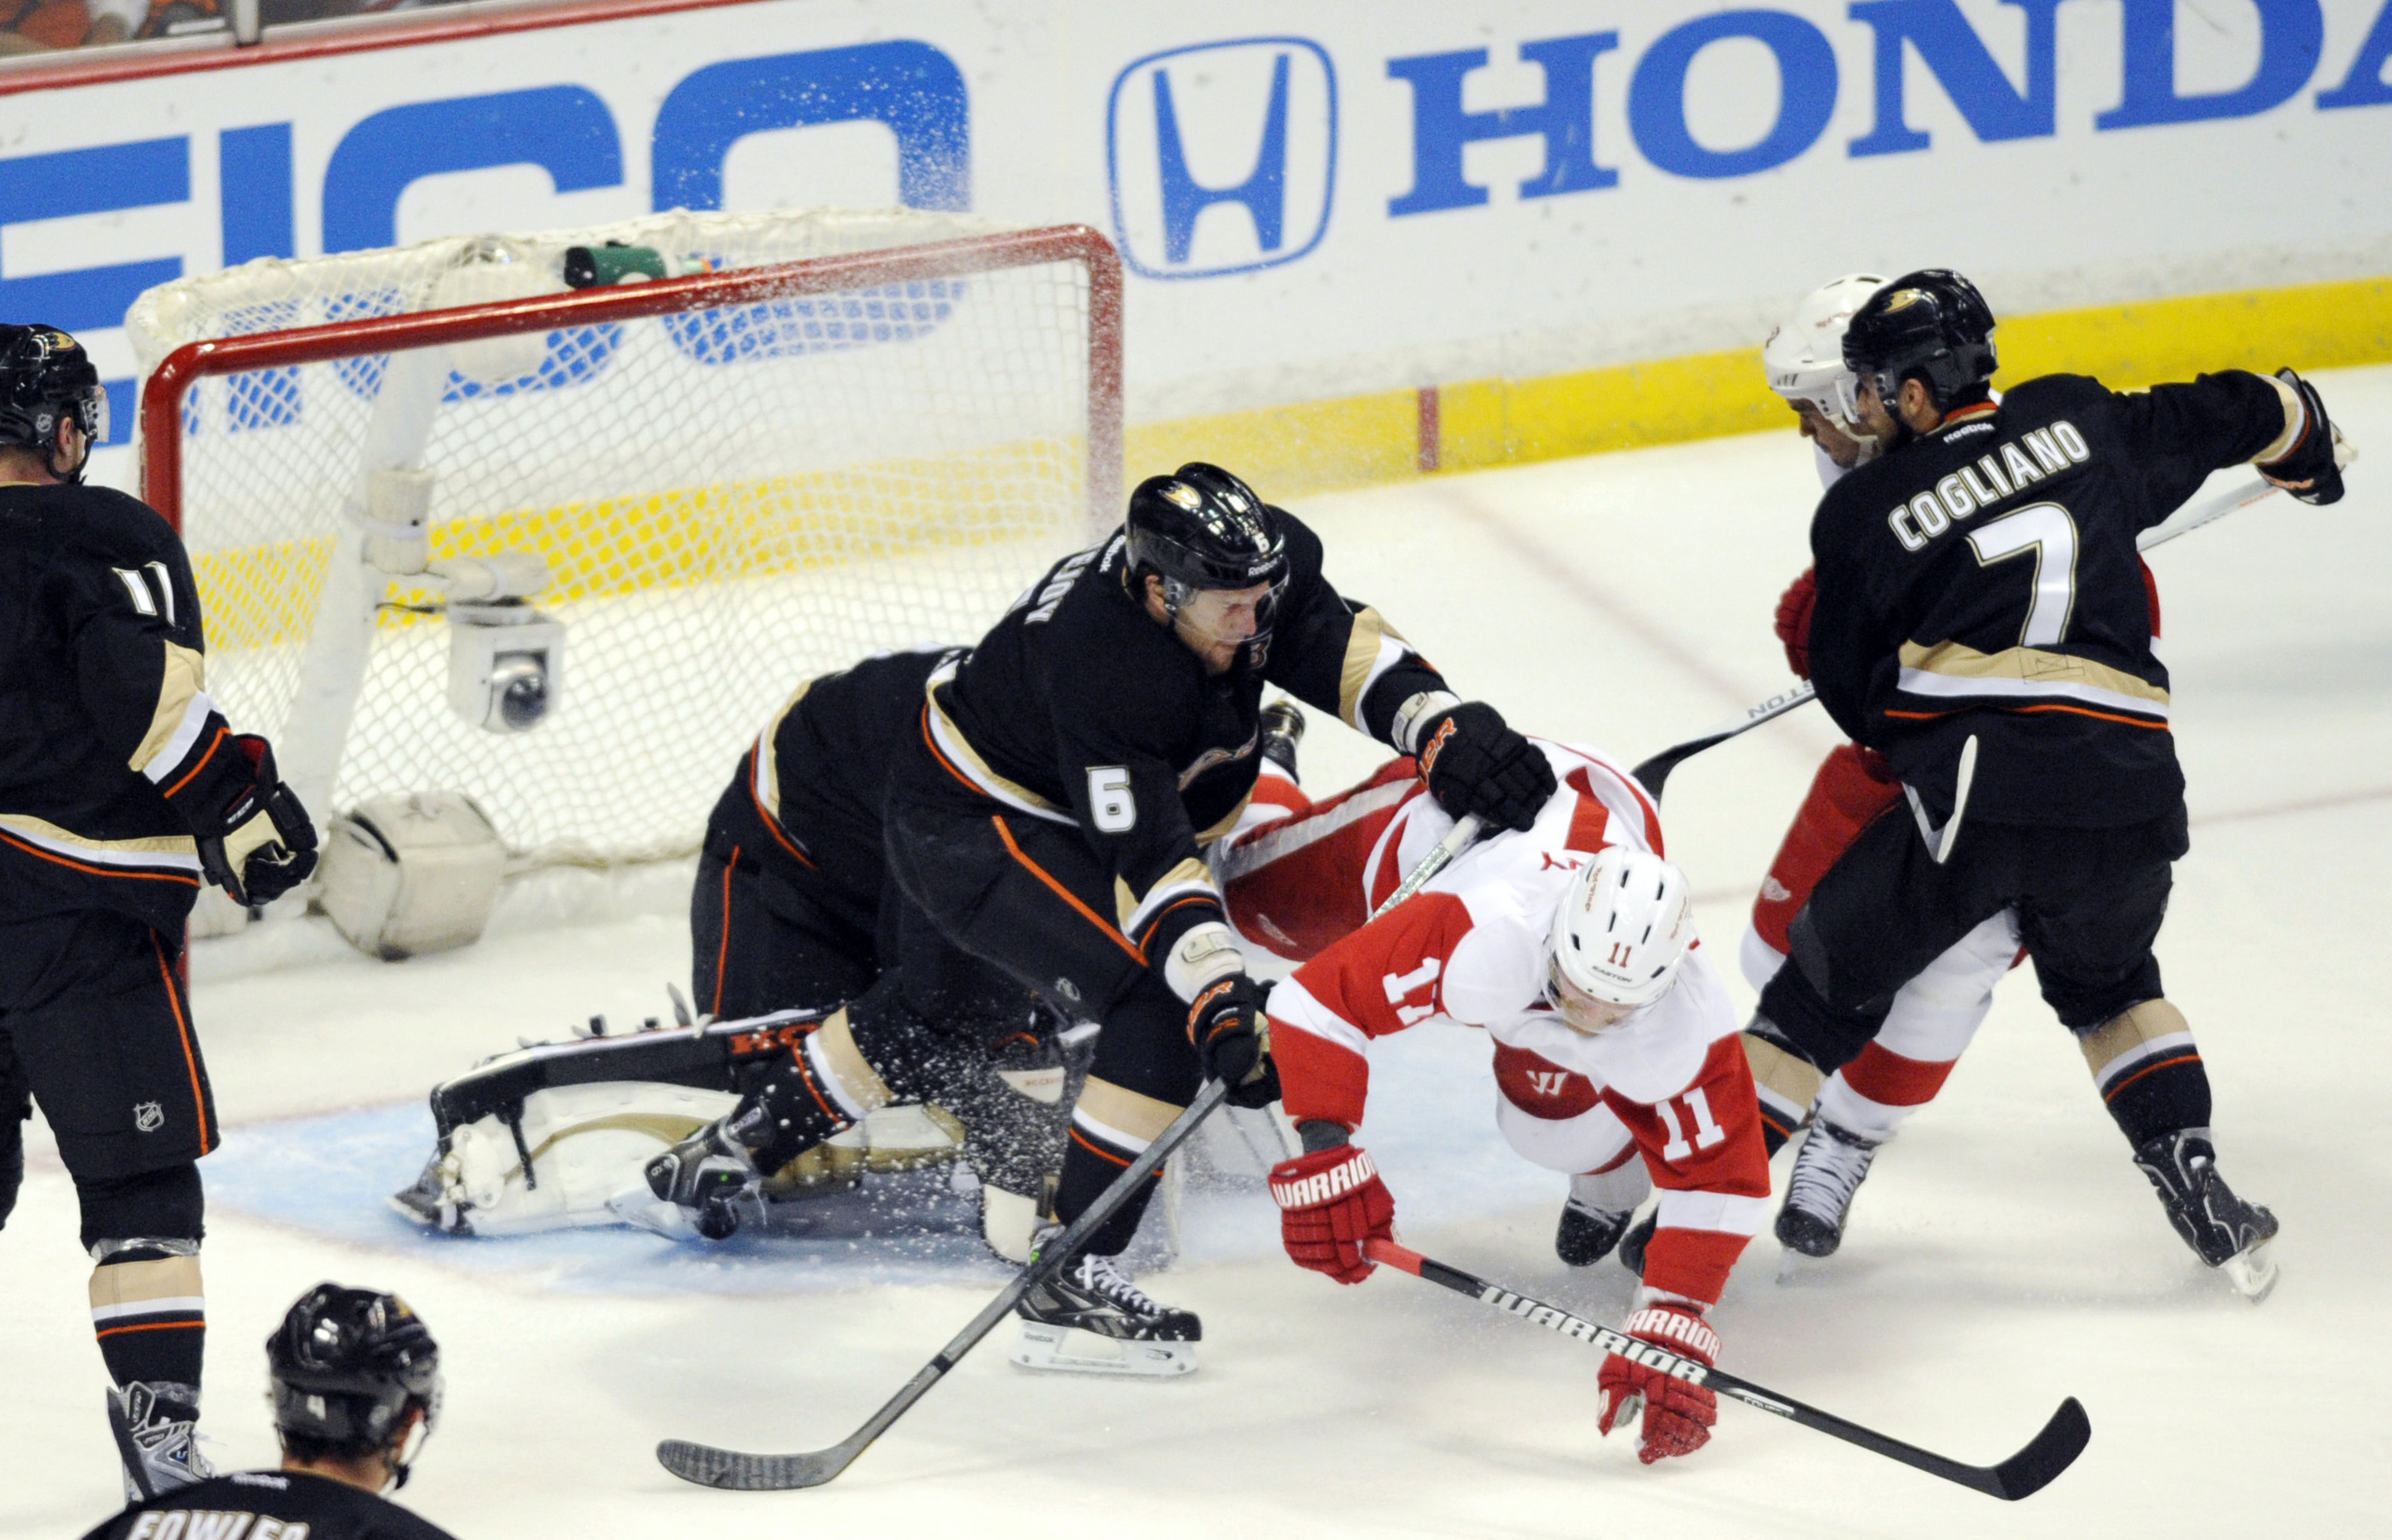 I'm a fan of anyone who knocks Dan Cleary over.